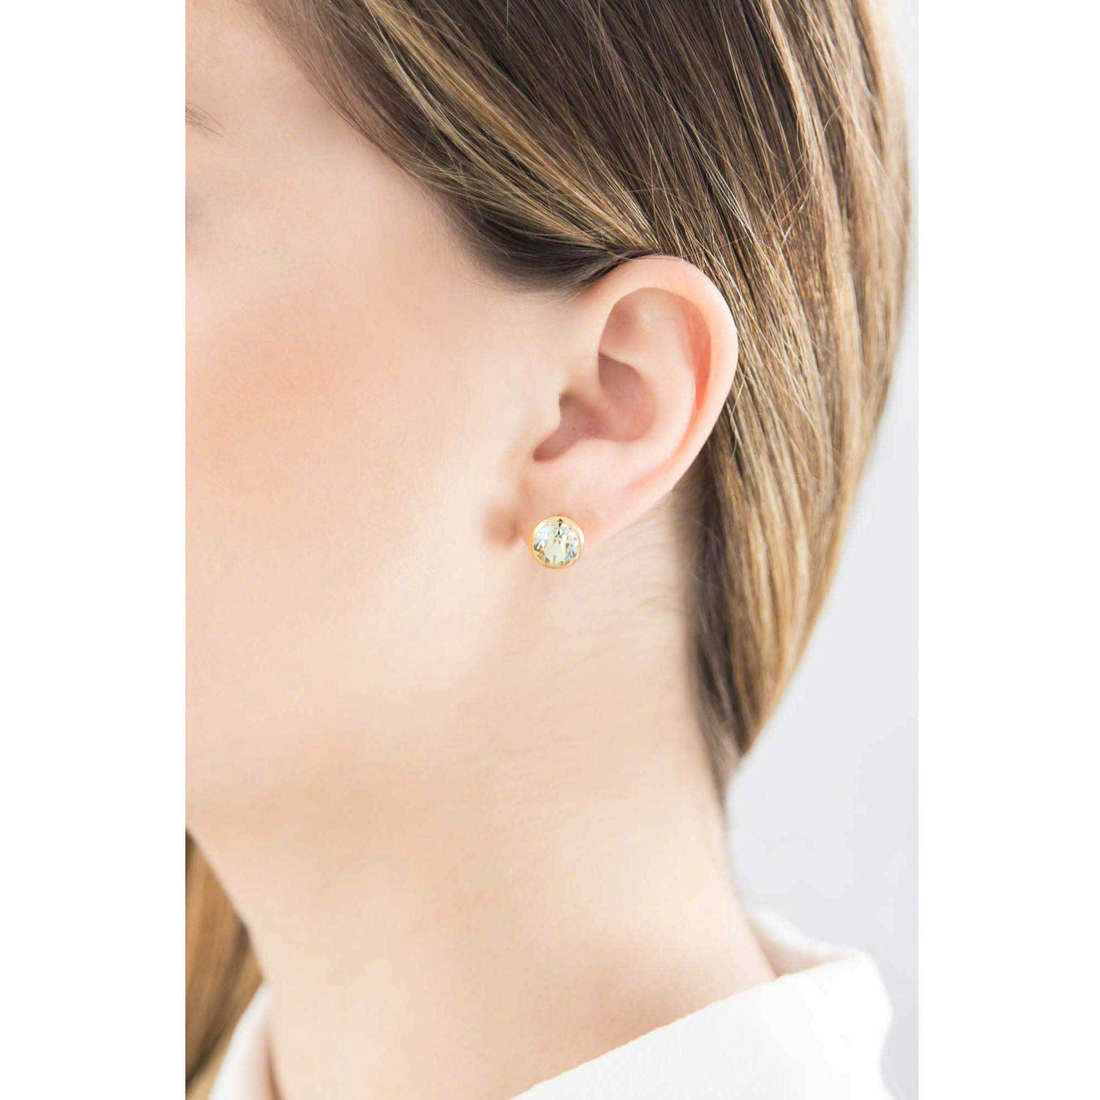 Brosway earrings E-Tring woman BRT23 indosso